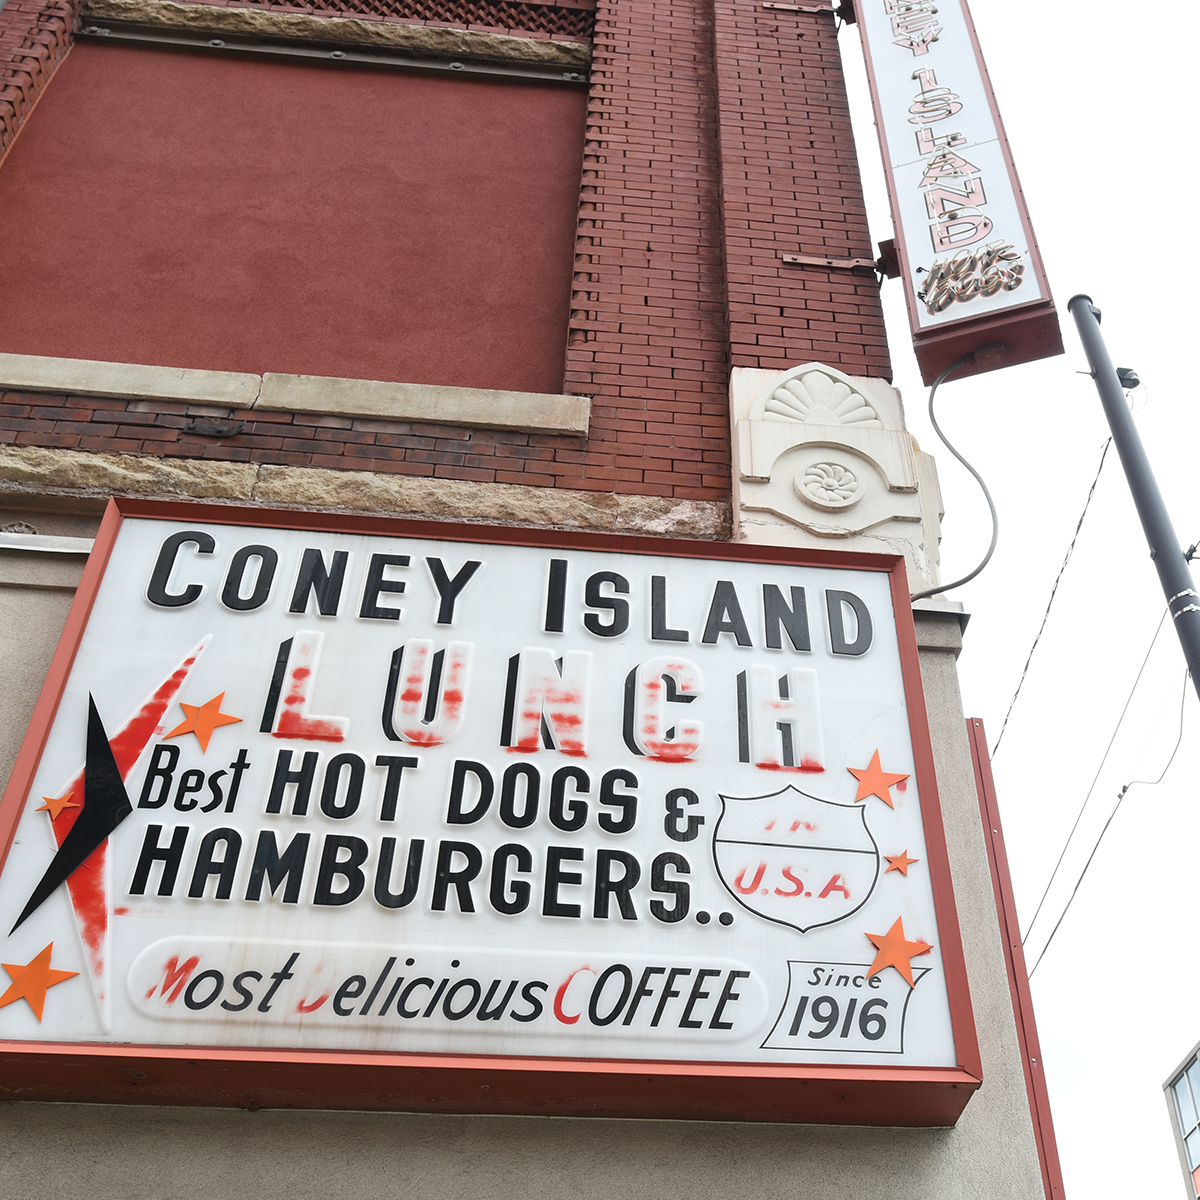 Coney Island Lunch - Best Hot Dogs & Hamburgers Building Sign